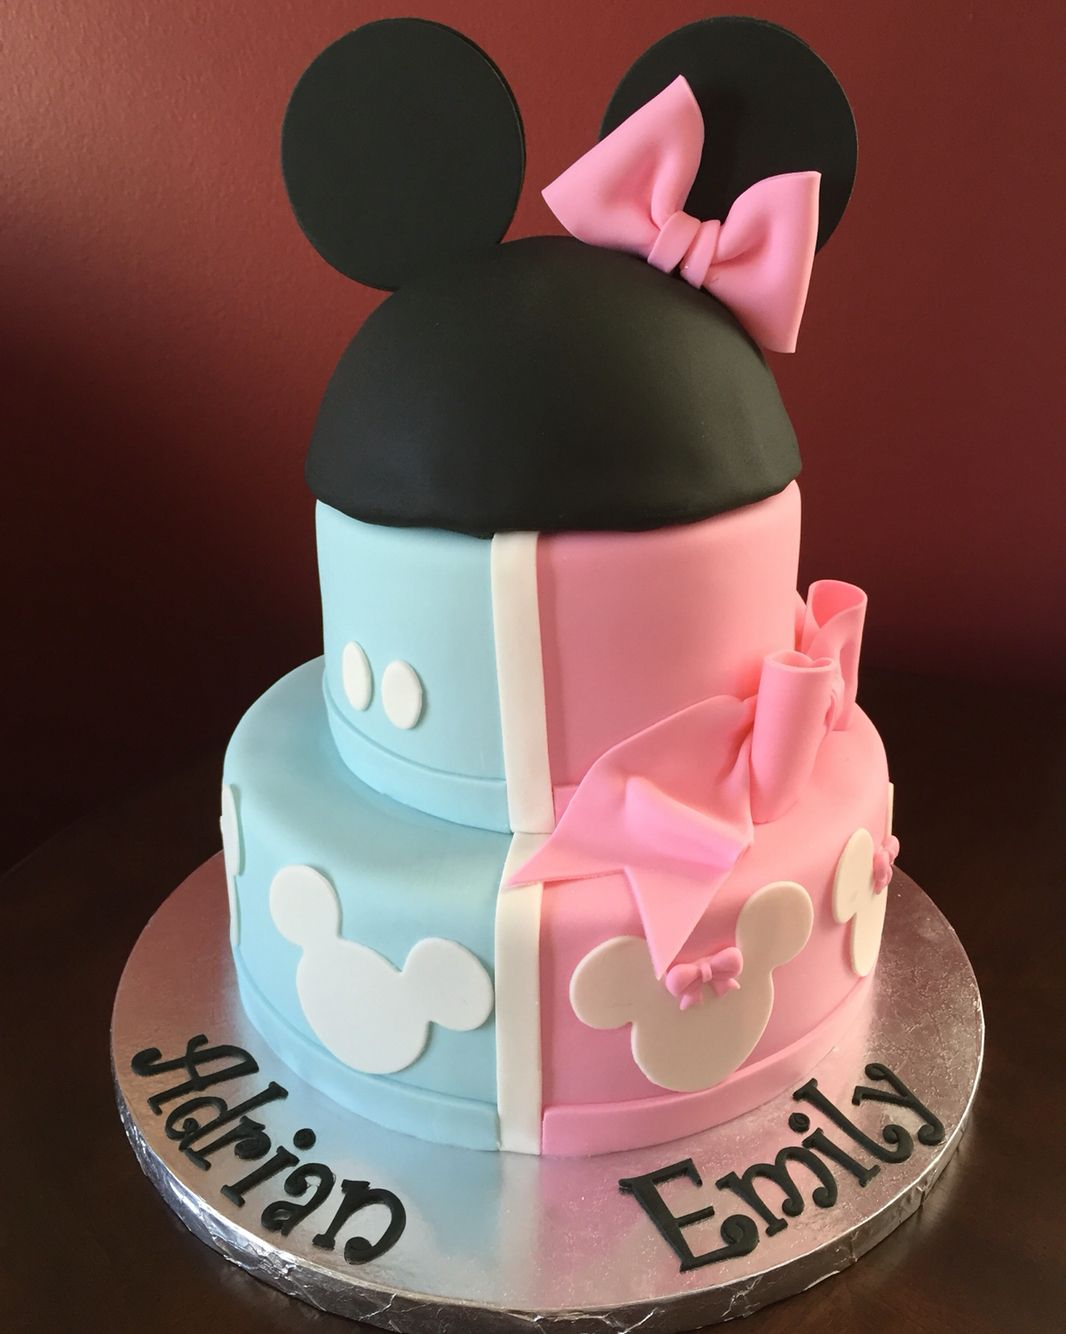 Twin Birthday Cakes Mickey And Minnie Mouse Birthday Cake For Twins Birthday Cakes